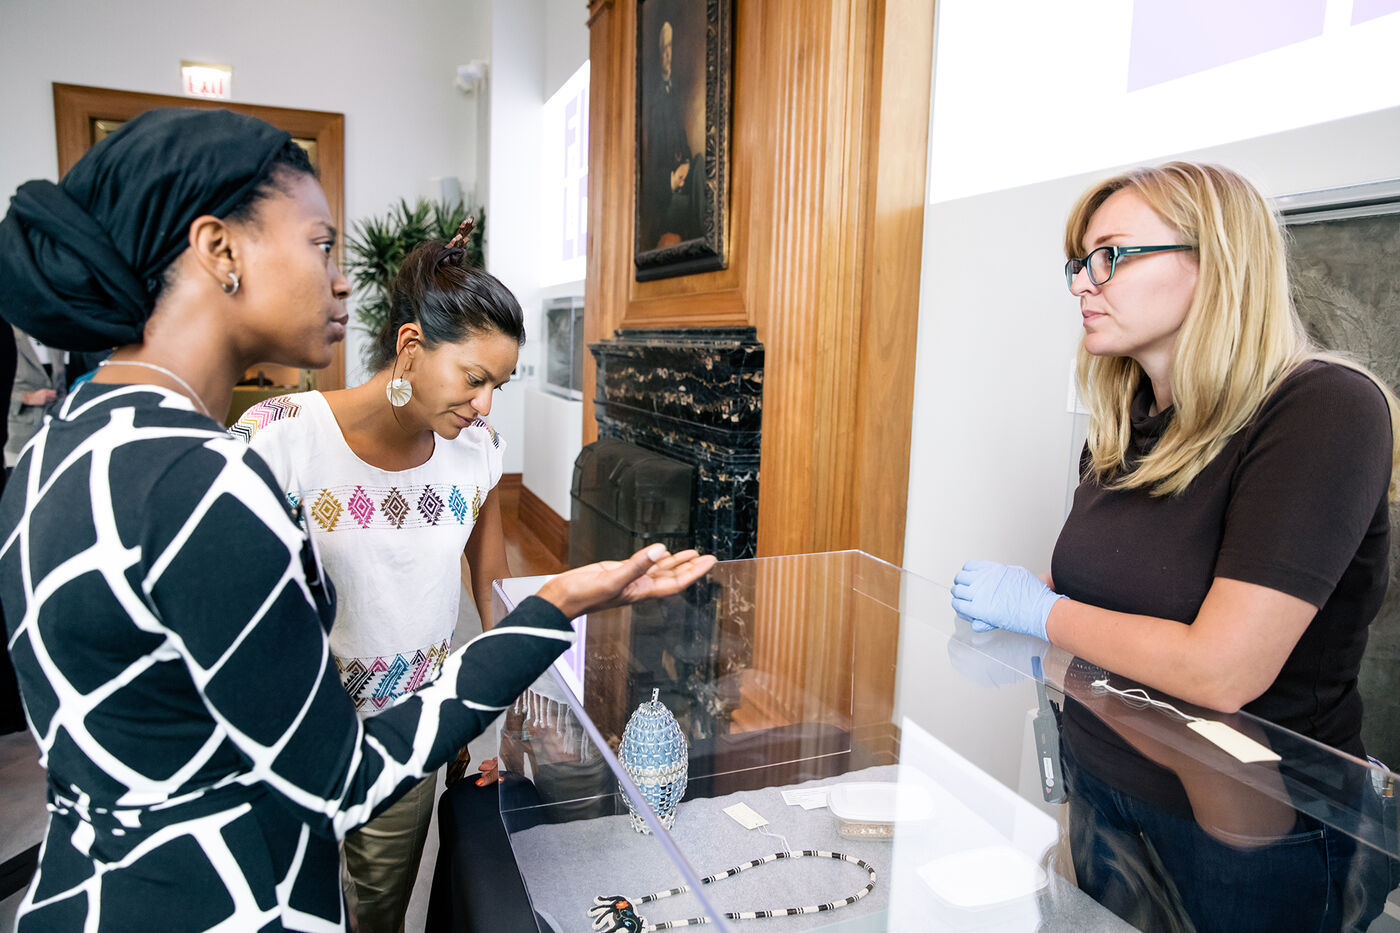 Two attendees and a museum staff member talk over a case filled with objects from the Field Museum's collections